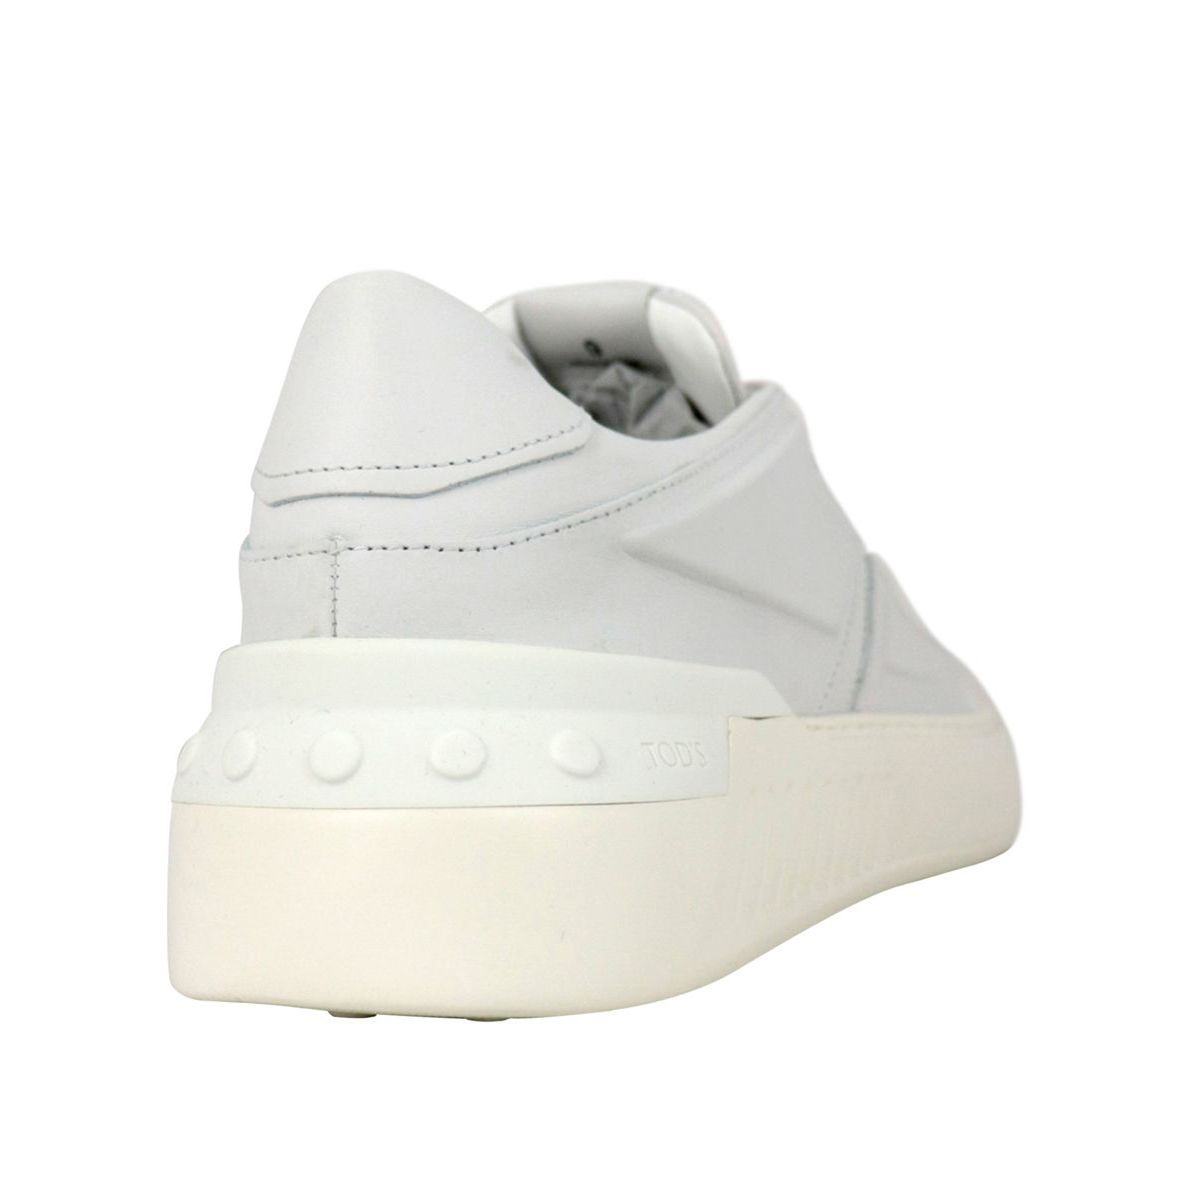 No_Code leather sneakers with drawstring closure White Tod's